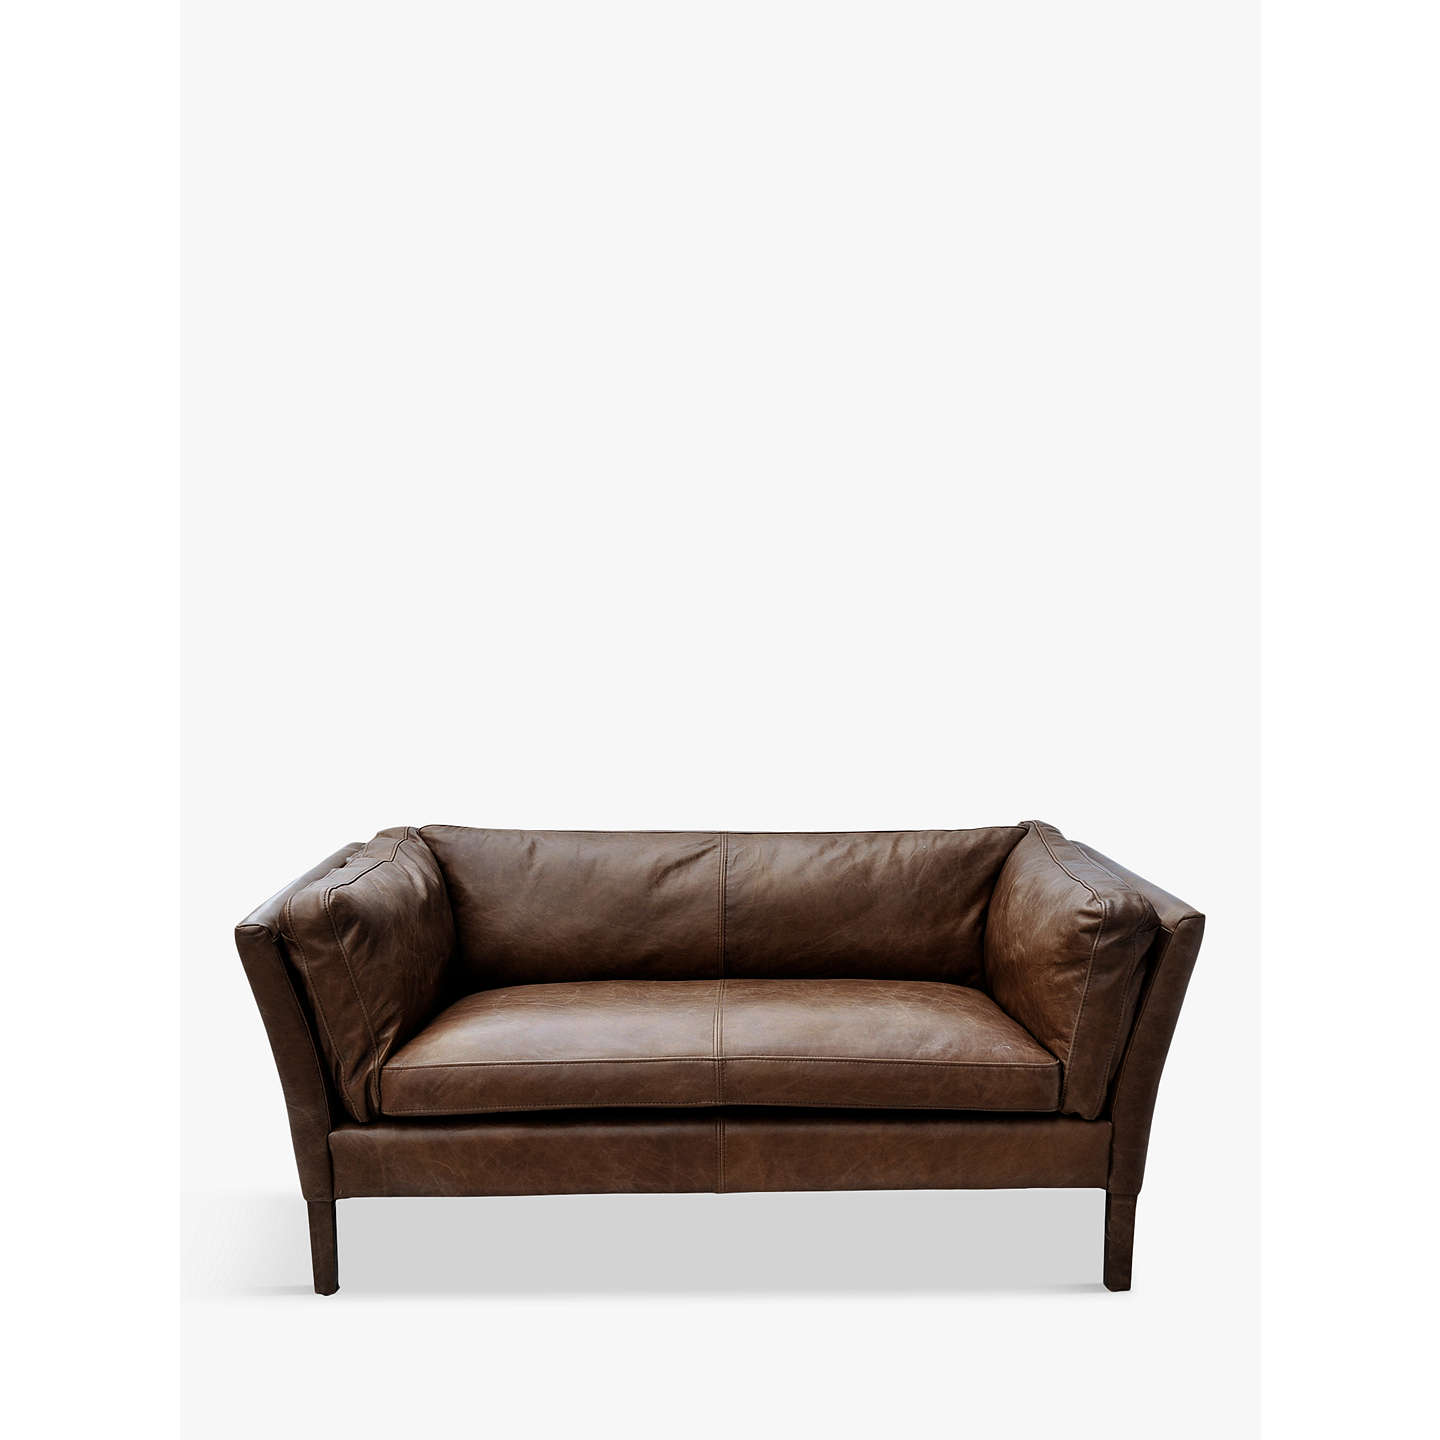 Halo Groucho Small Aniline Leather Sofa Riders Cocoa Online At Johnlewis